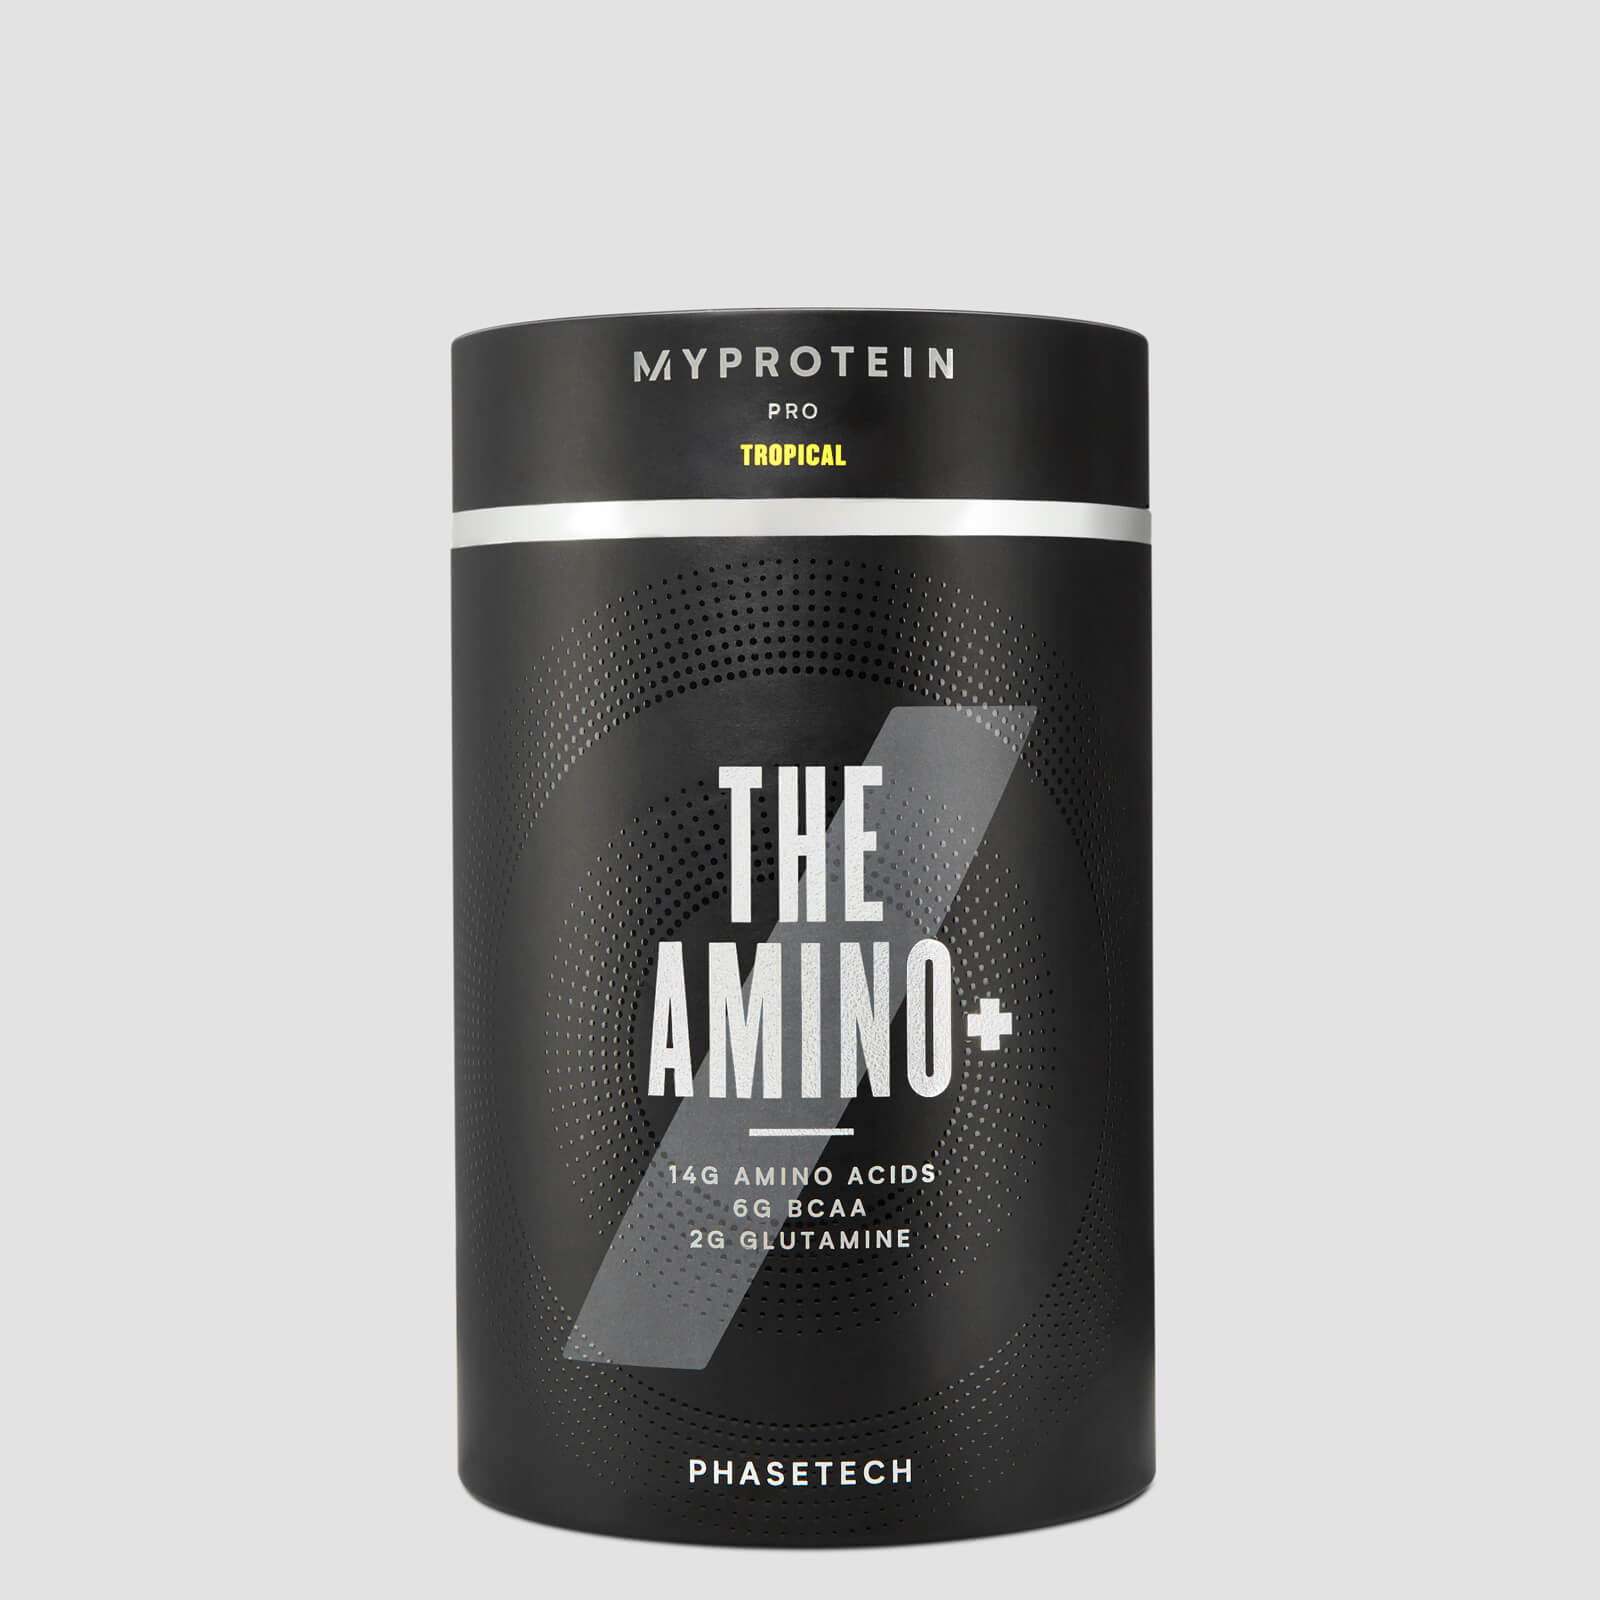 THE Amino+ - 20servings - Tropical